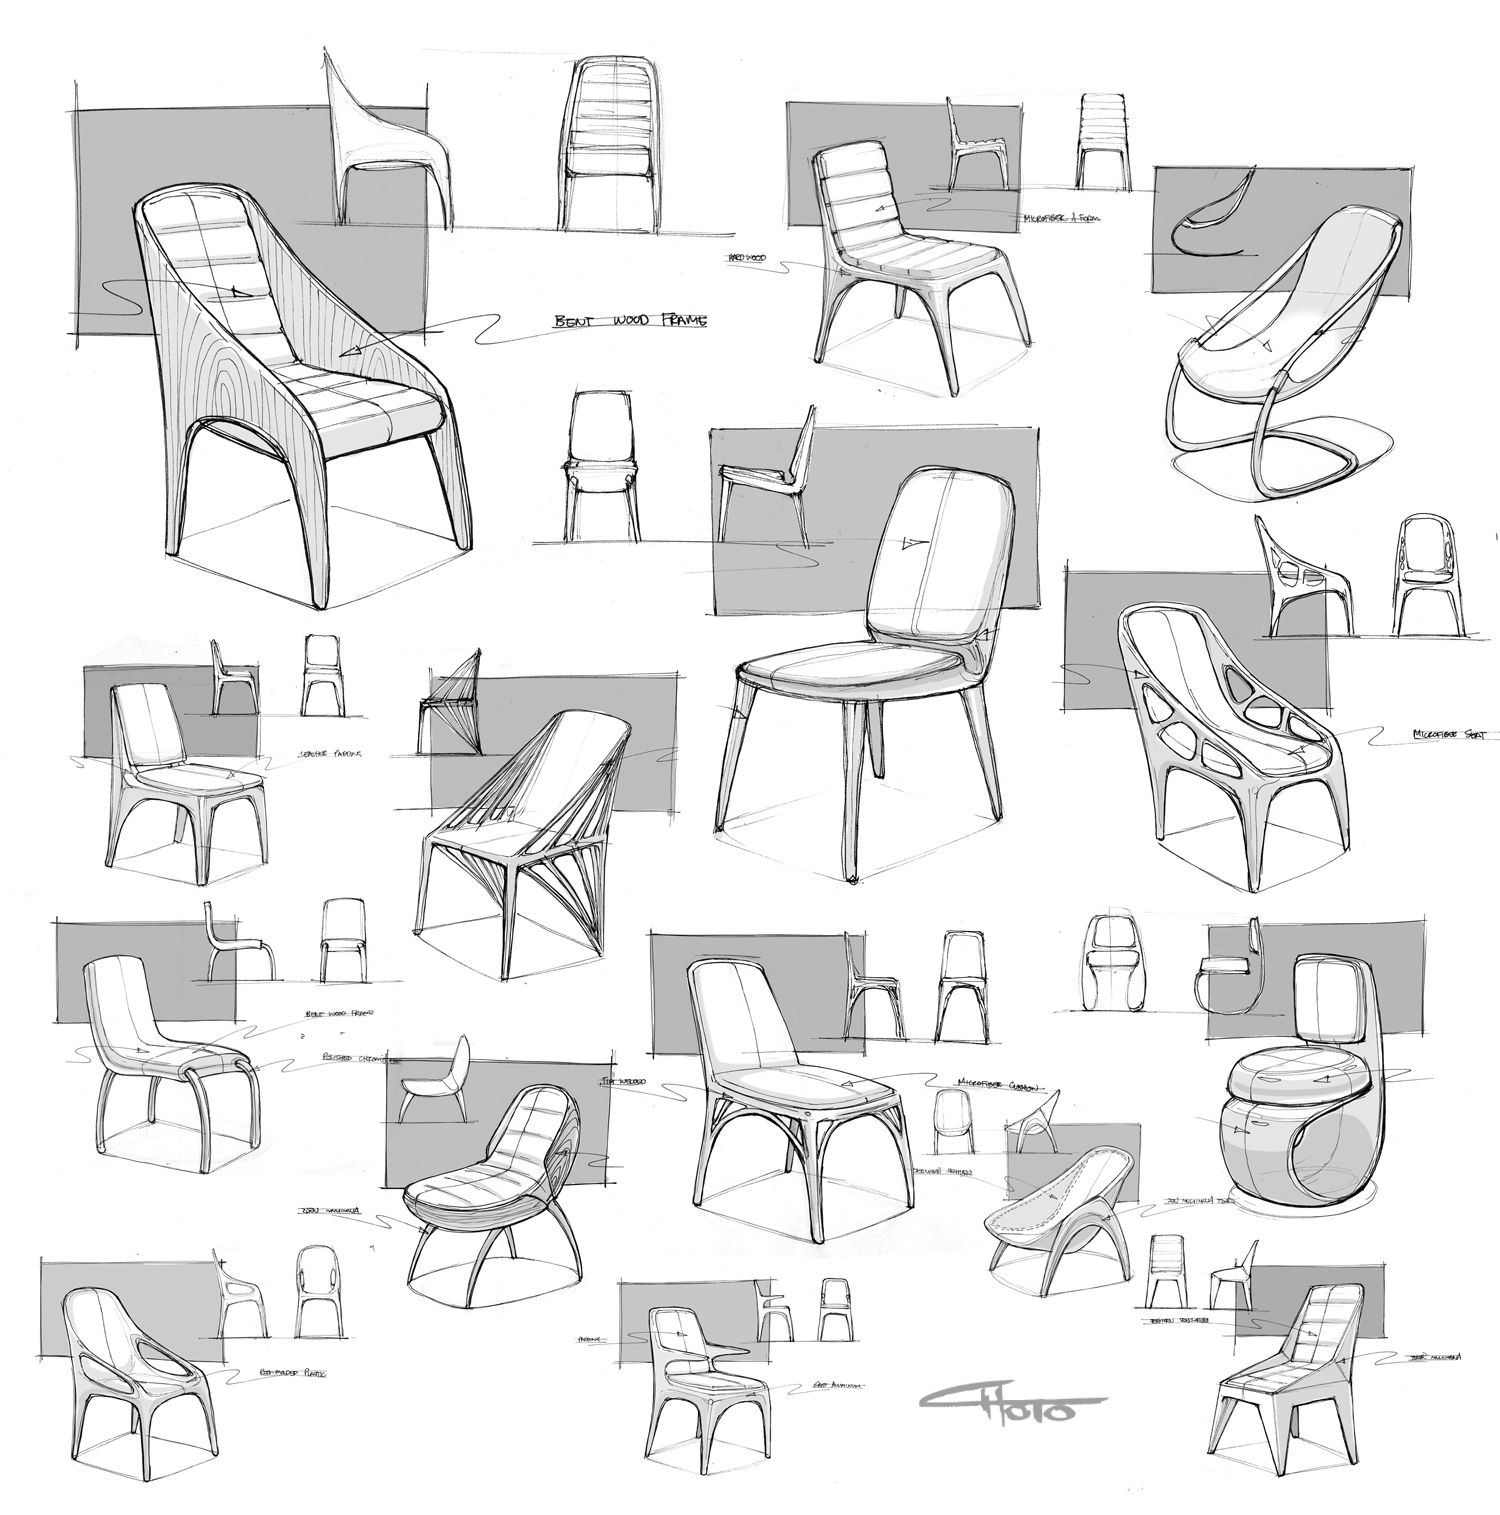 chair design sketches. Wonderful Chair Matthew Choto For Chair Design Sketches K